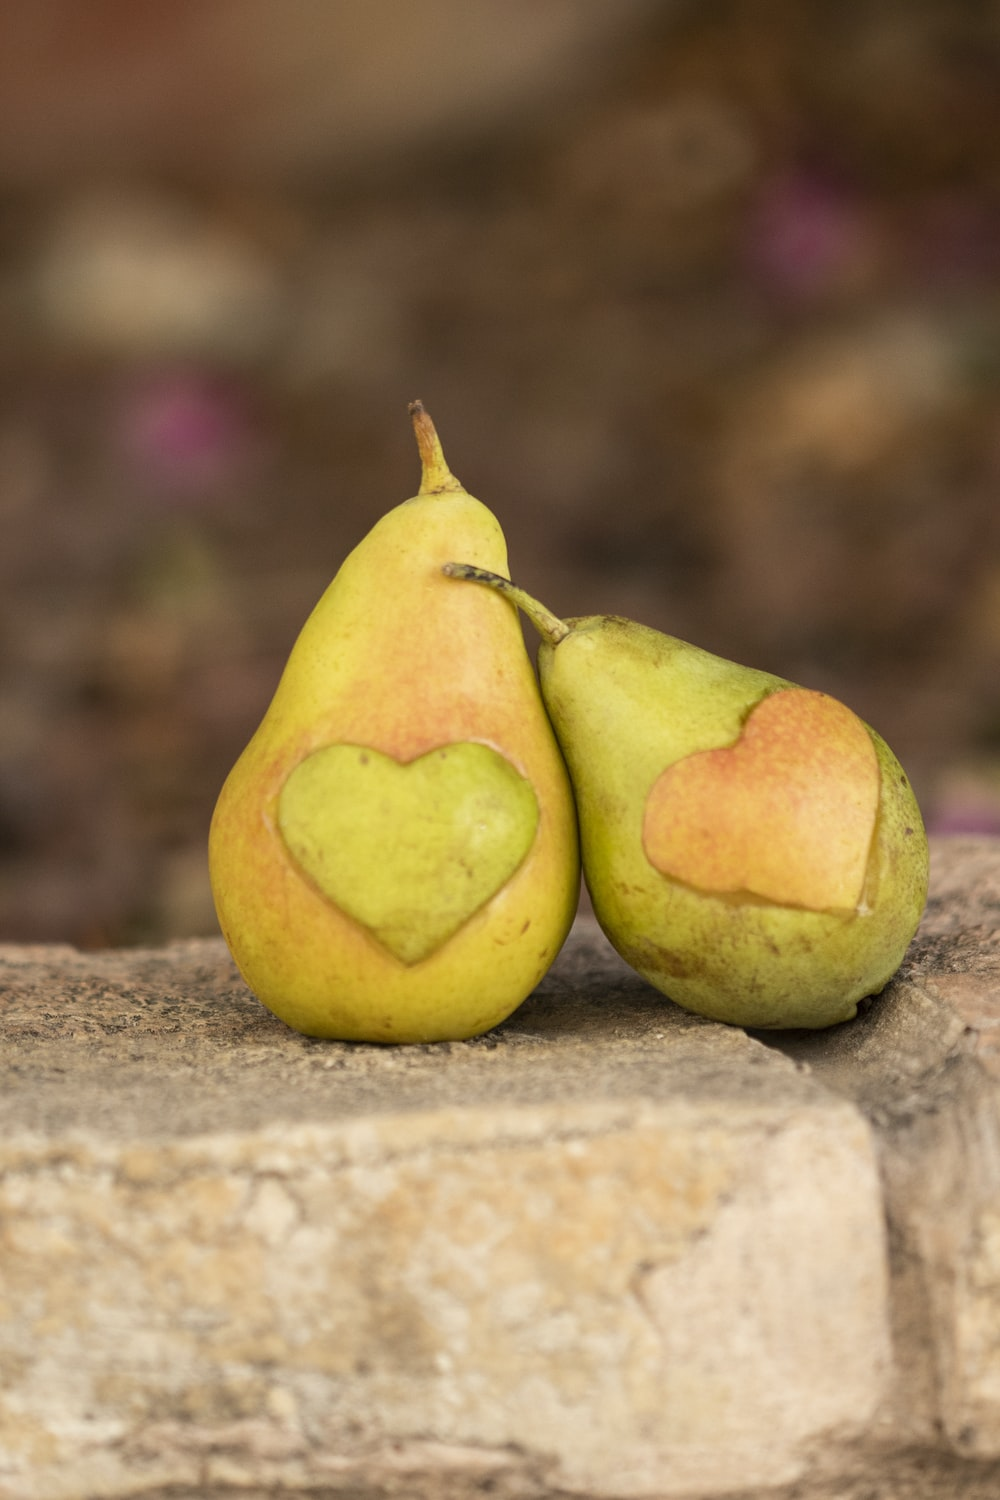 two pears on concrete surface